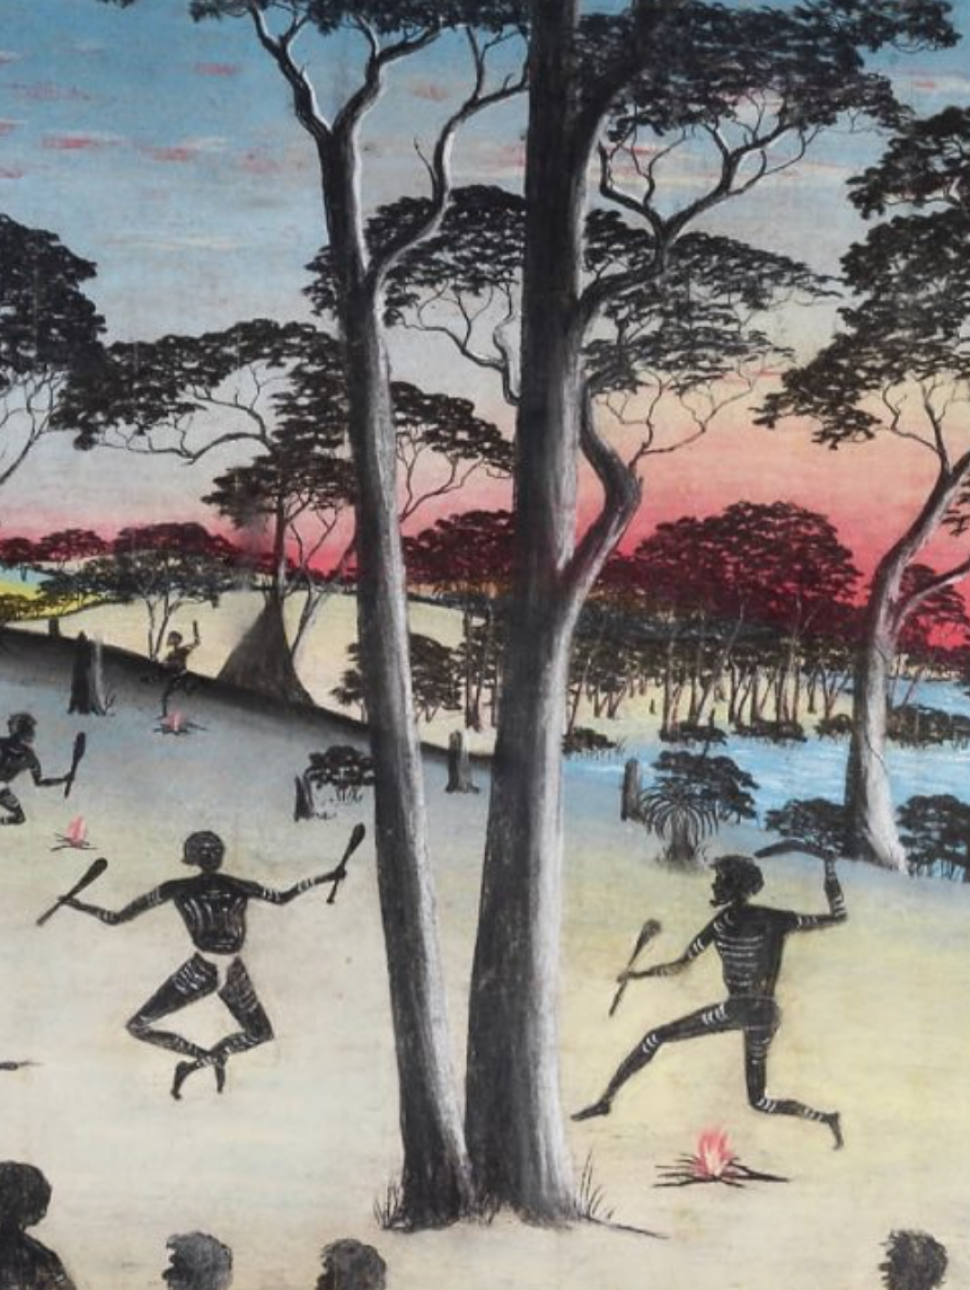 A stylised painting of Aboriginal people in a camp area with small campfires surrounded by trees and a river